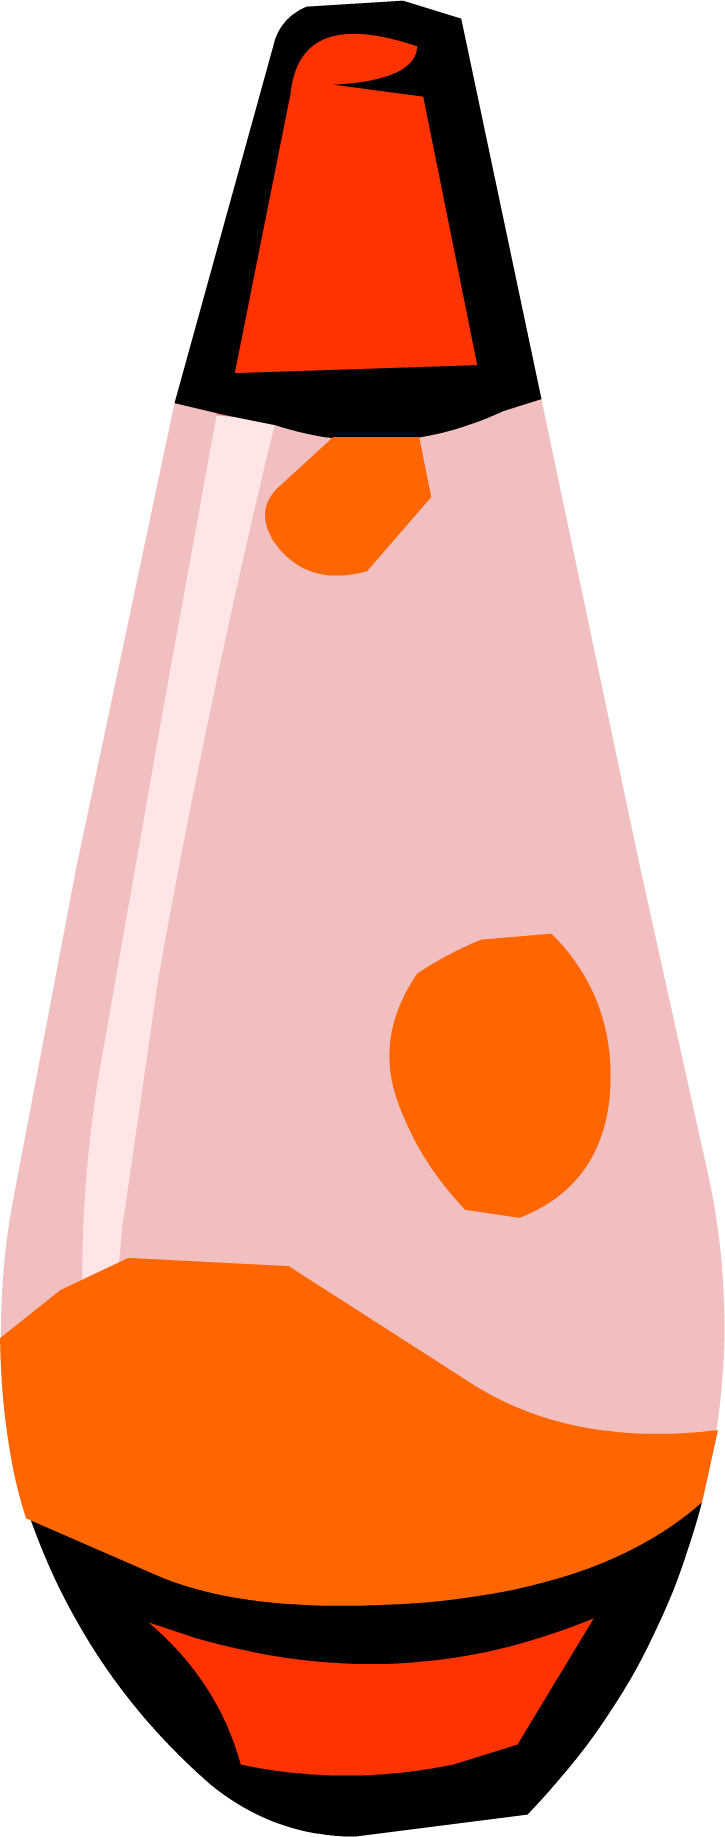 Lava lamp png - Full Resolution